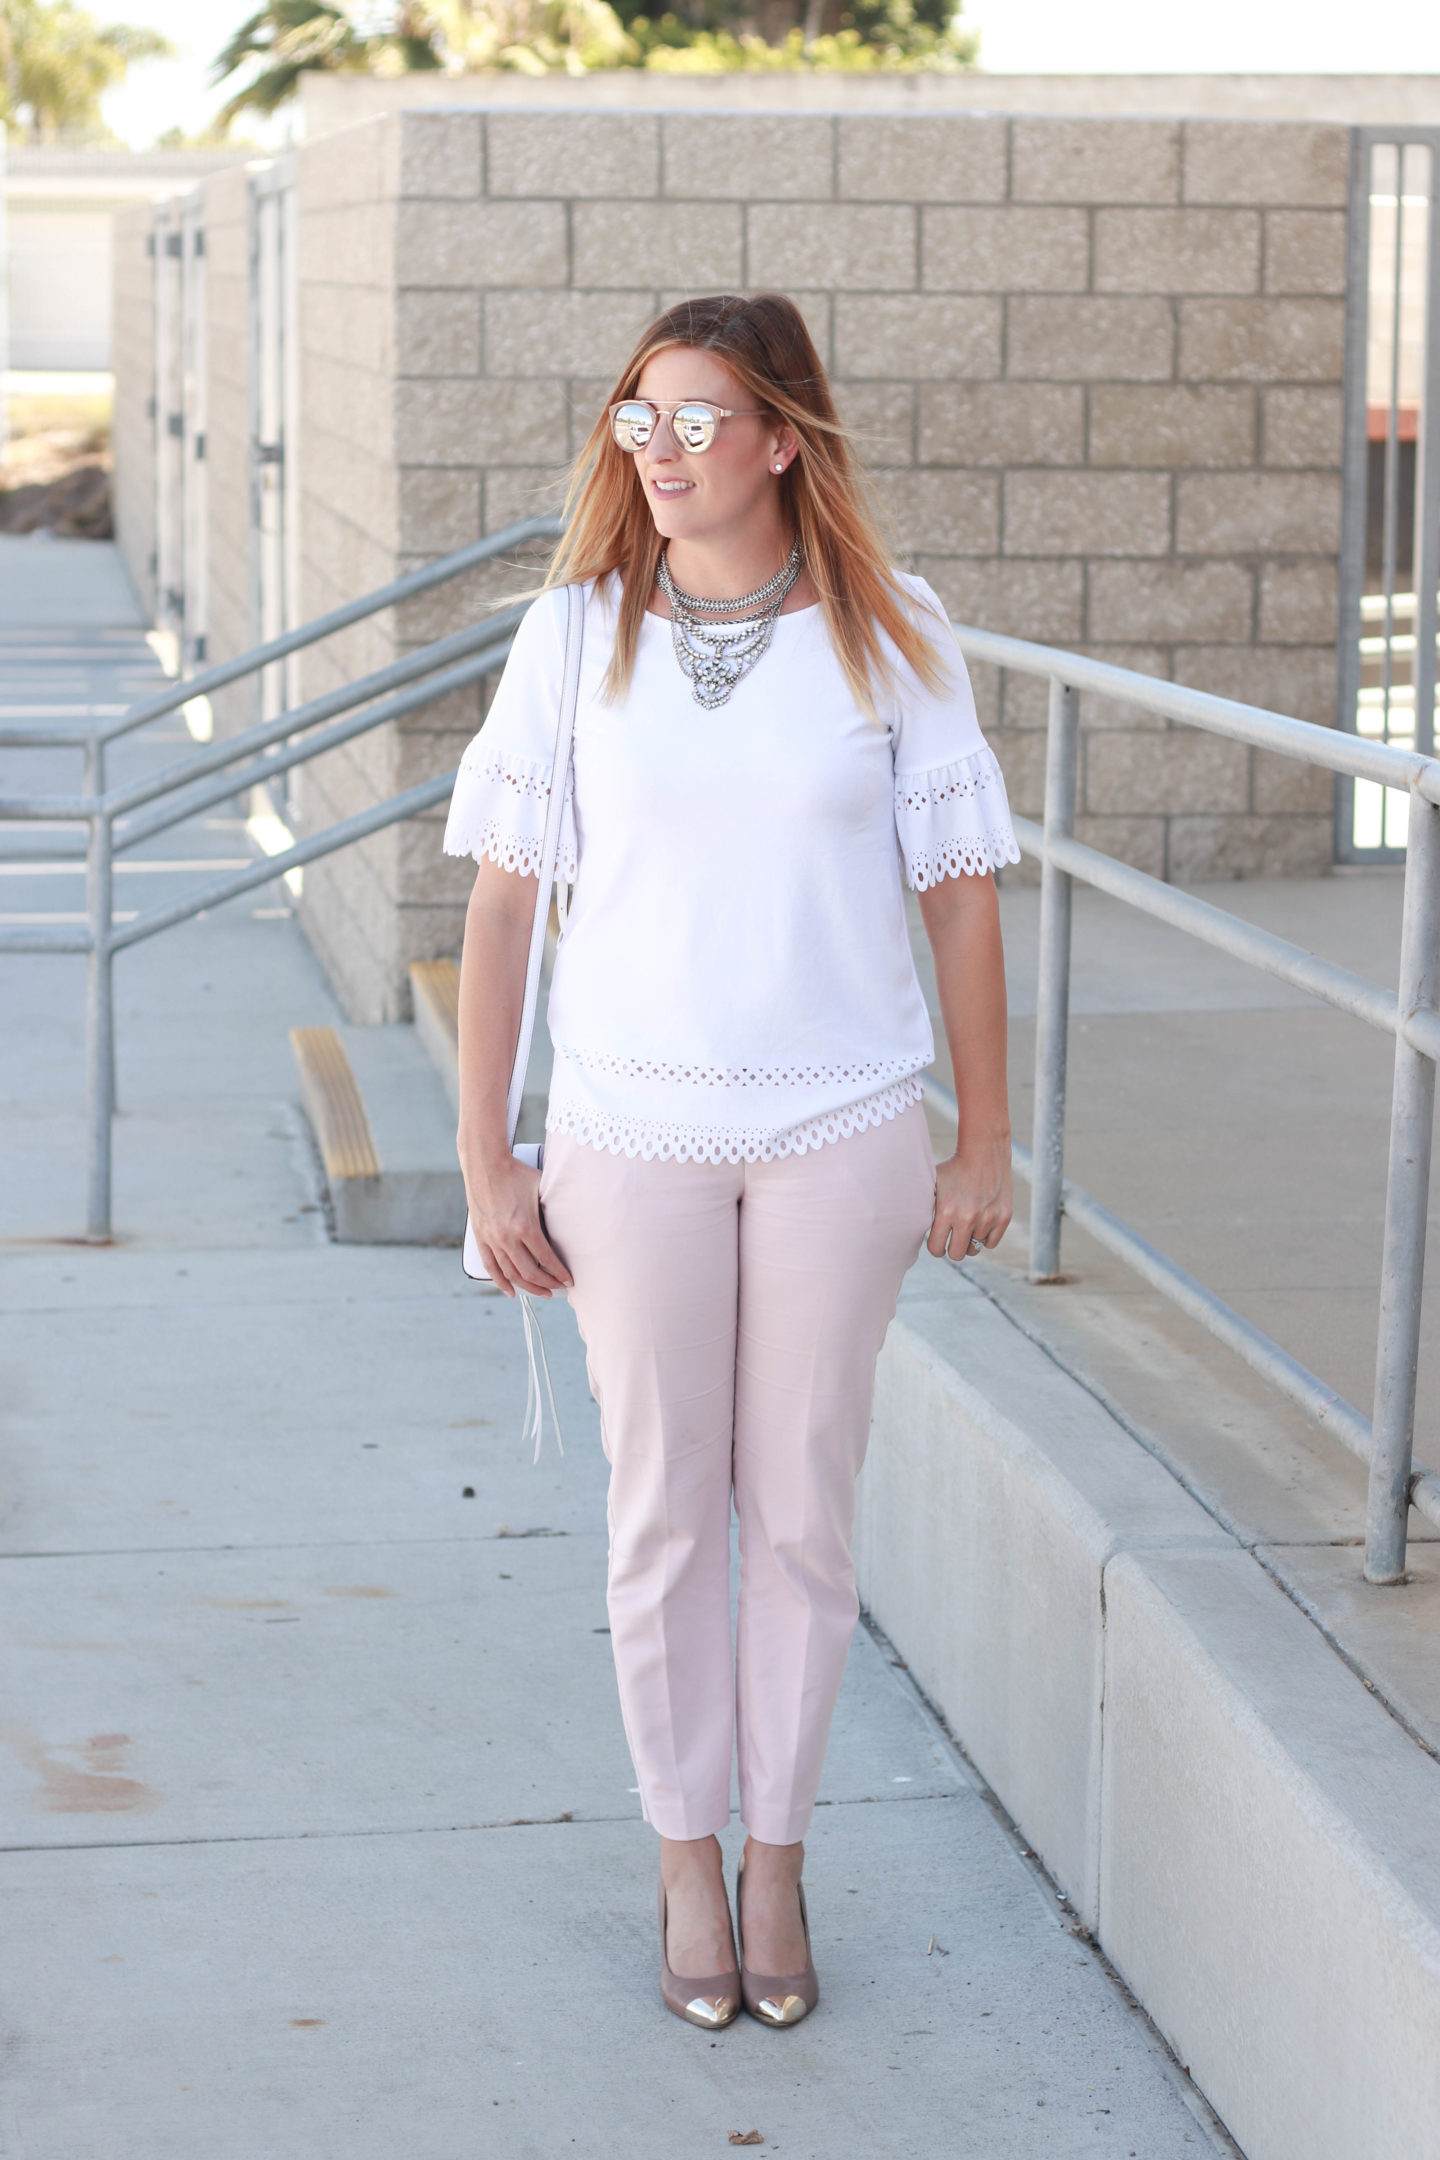 The perfect pair of blush pants with an eyelet detailed top.